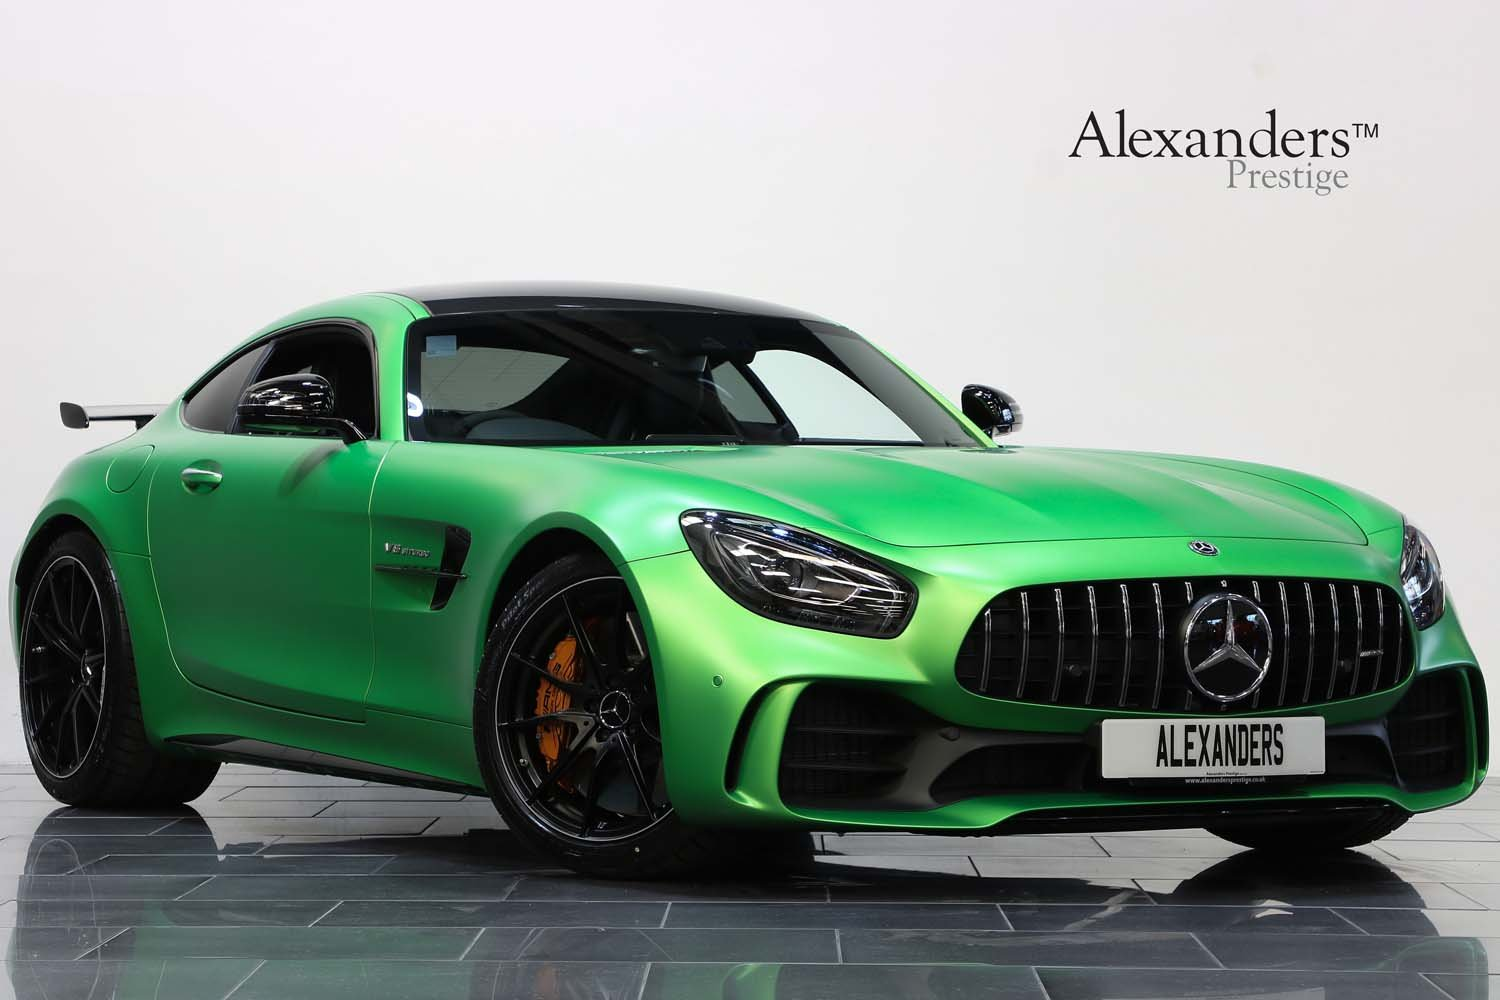 2019 19 MERCEDES BENZ AMG GT-R AUTO  For Sale (picture 1 of 6)